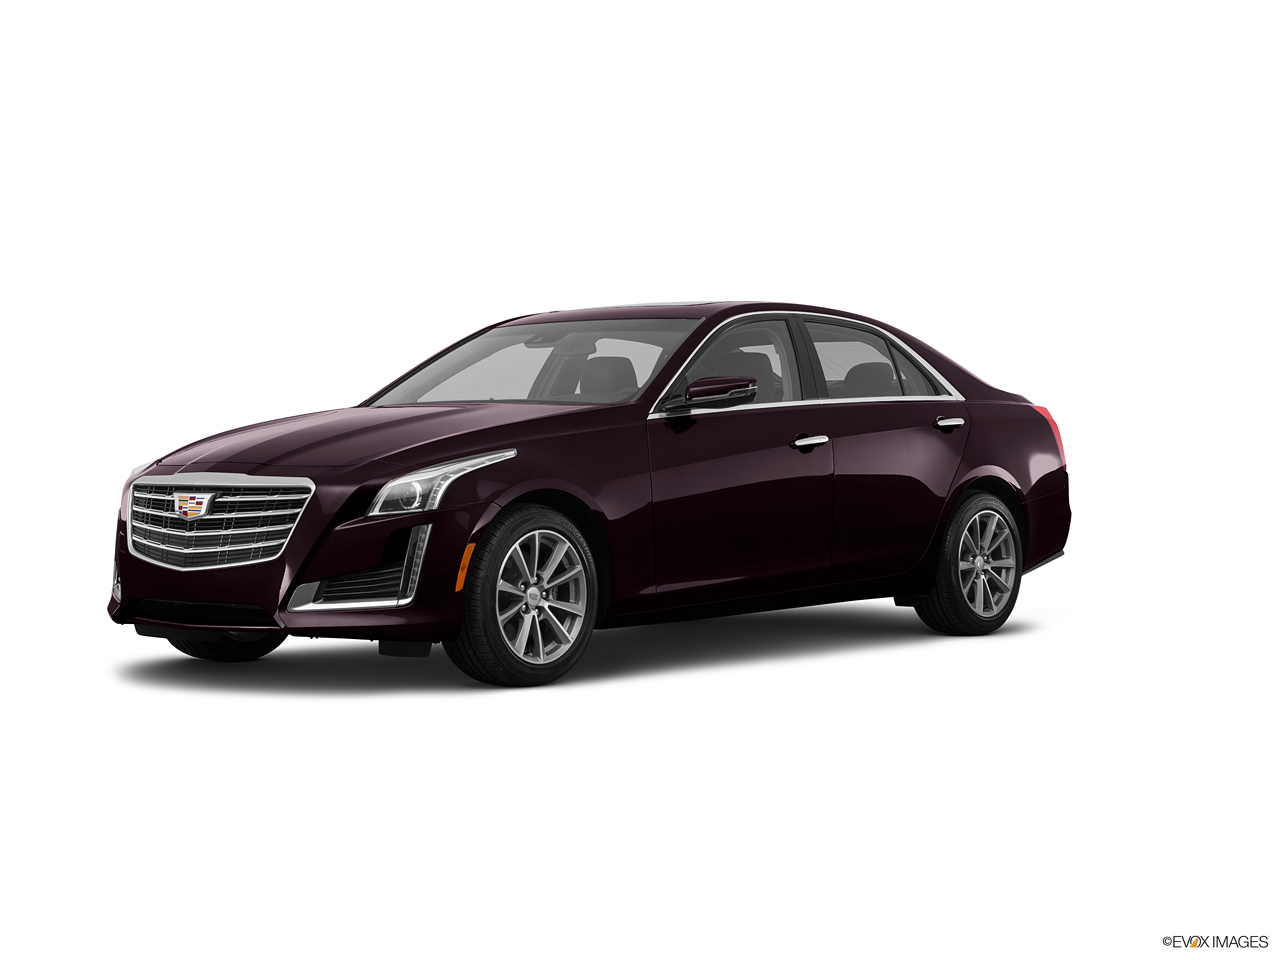 car features list for cadillac cts 2017 3 6l premium. Black Bedroom Furniture Sets. Home Design Ideas